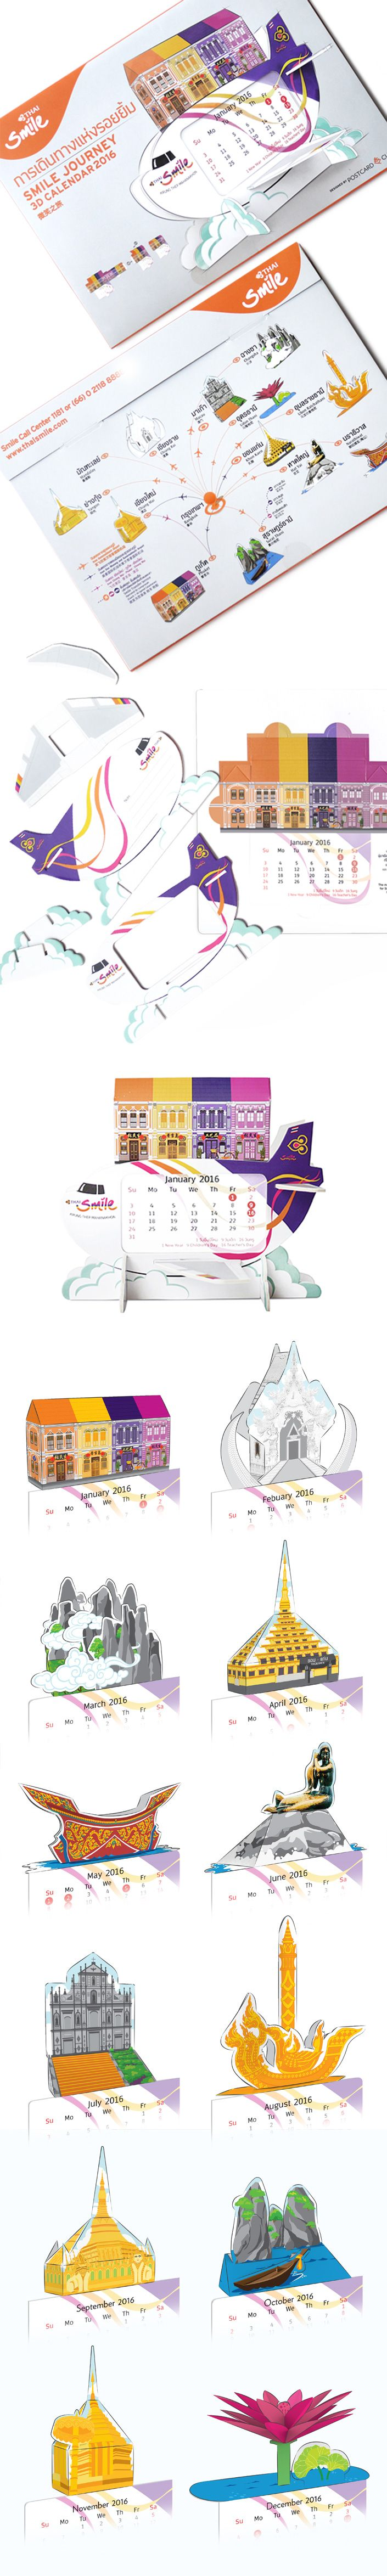 Calendar Design Each month is represented by one landmark that you can make into your own foldable journey. #paper #Foldable Calendar #Calendar Design